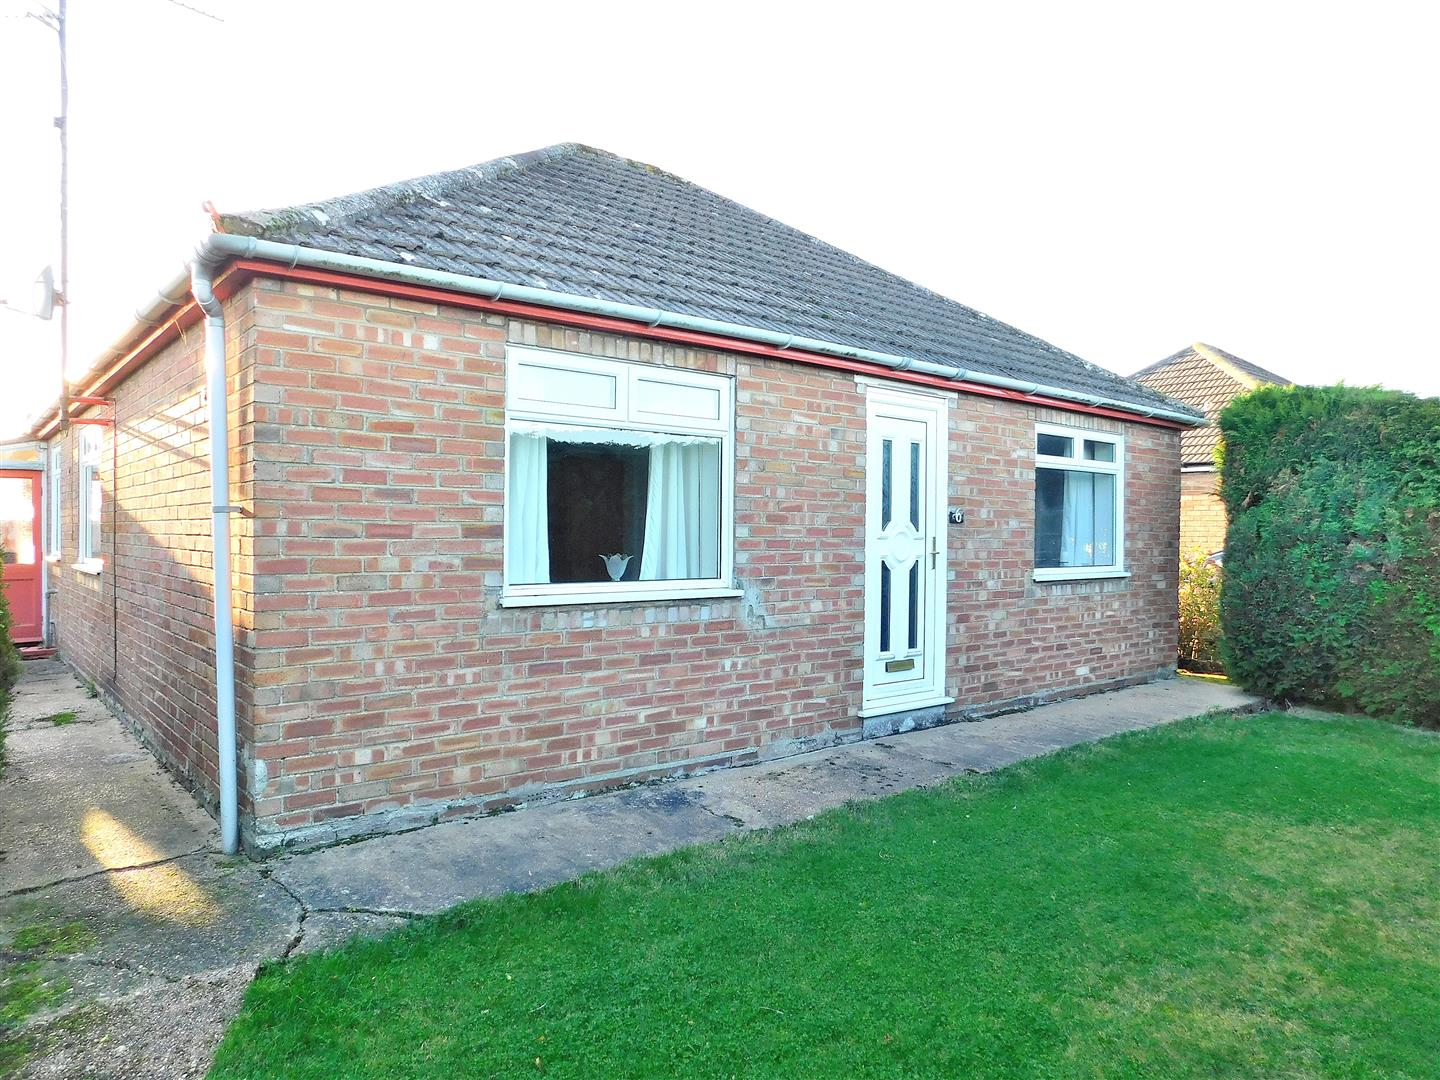 3 bed detached bungalow for sale in King's Lynn, PE34 4BA, PE34